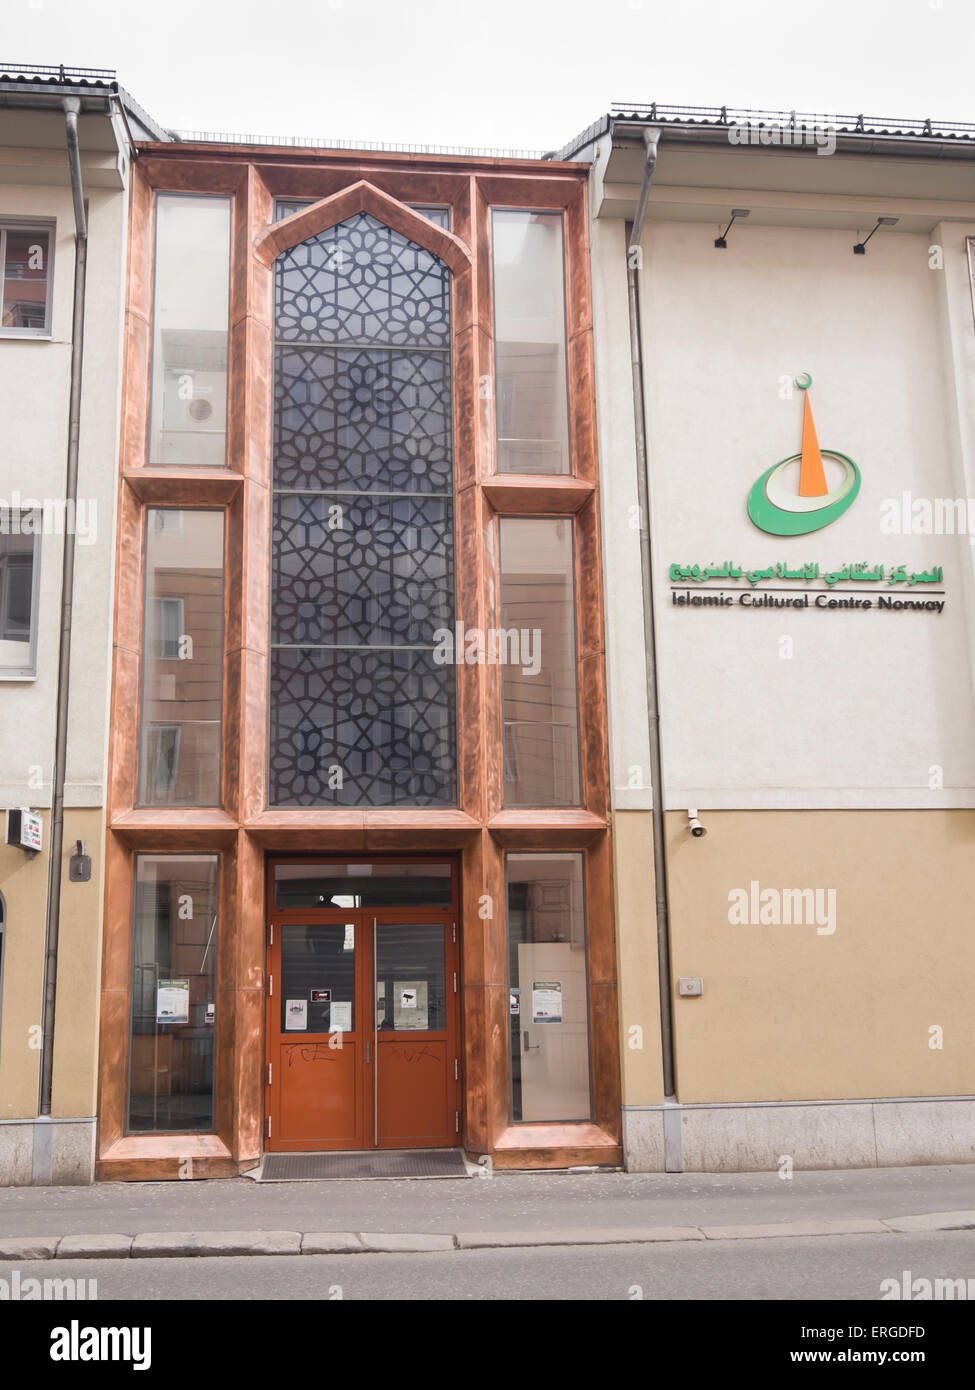 Islamic Cultural Centre Norway, Islamic organization and mosque in Gronland, Oslo Norway - Stock Image